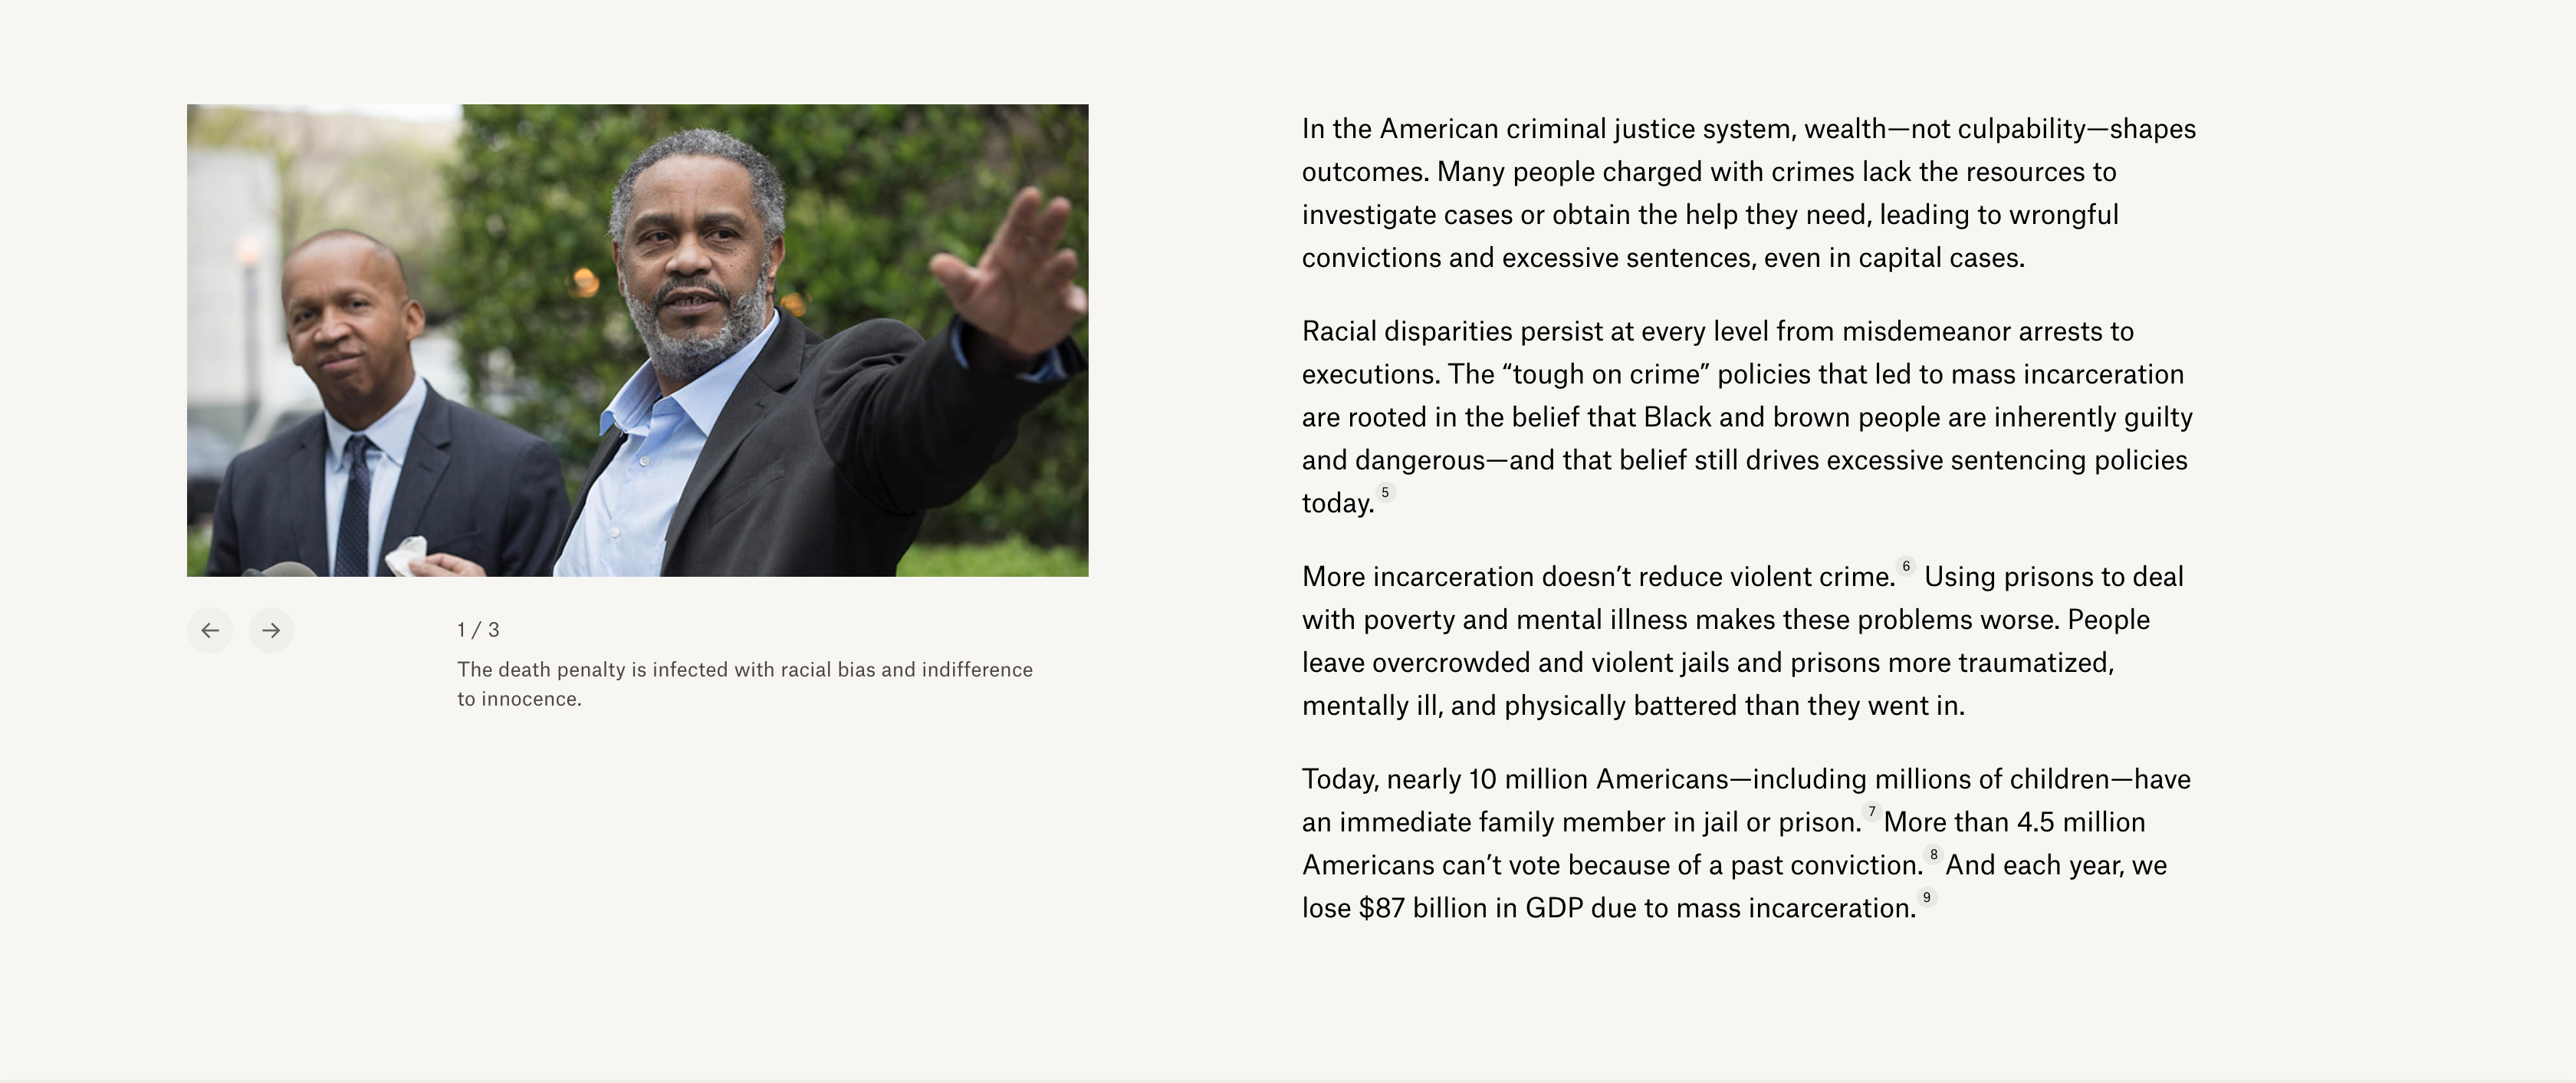 The Equal Justice Initiative uses photos of real people throughout their website to explain their issues